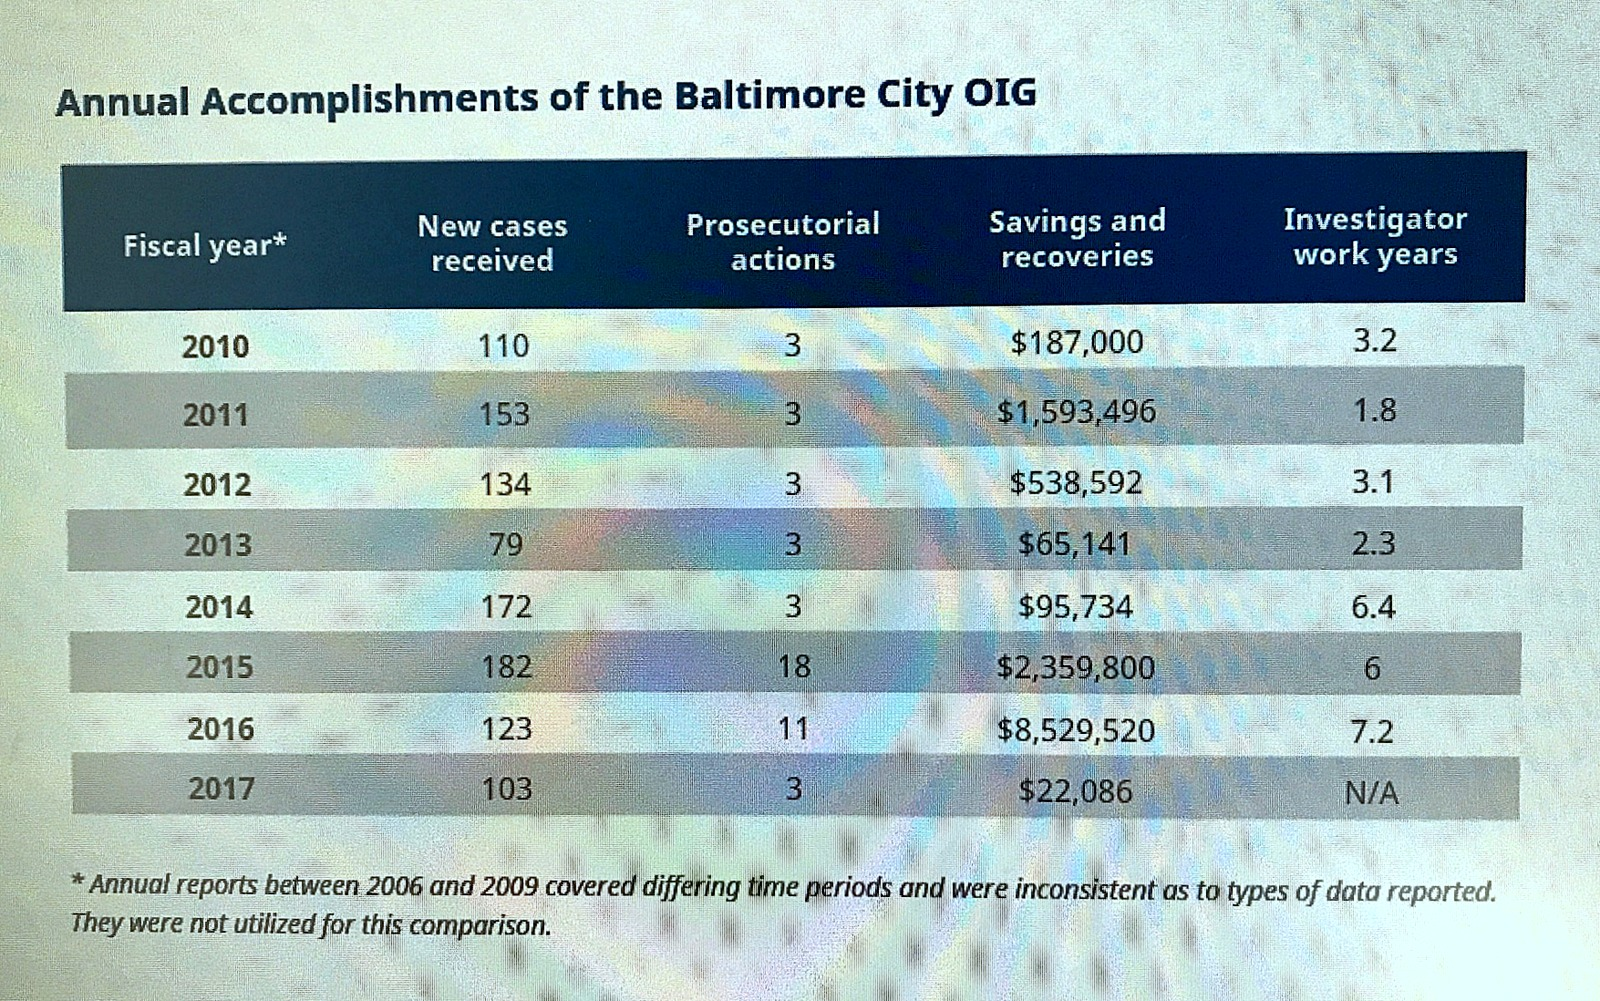 Metrics of the yearly performance of the OIG, compiled from annual reports. (